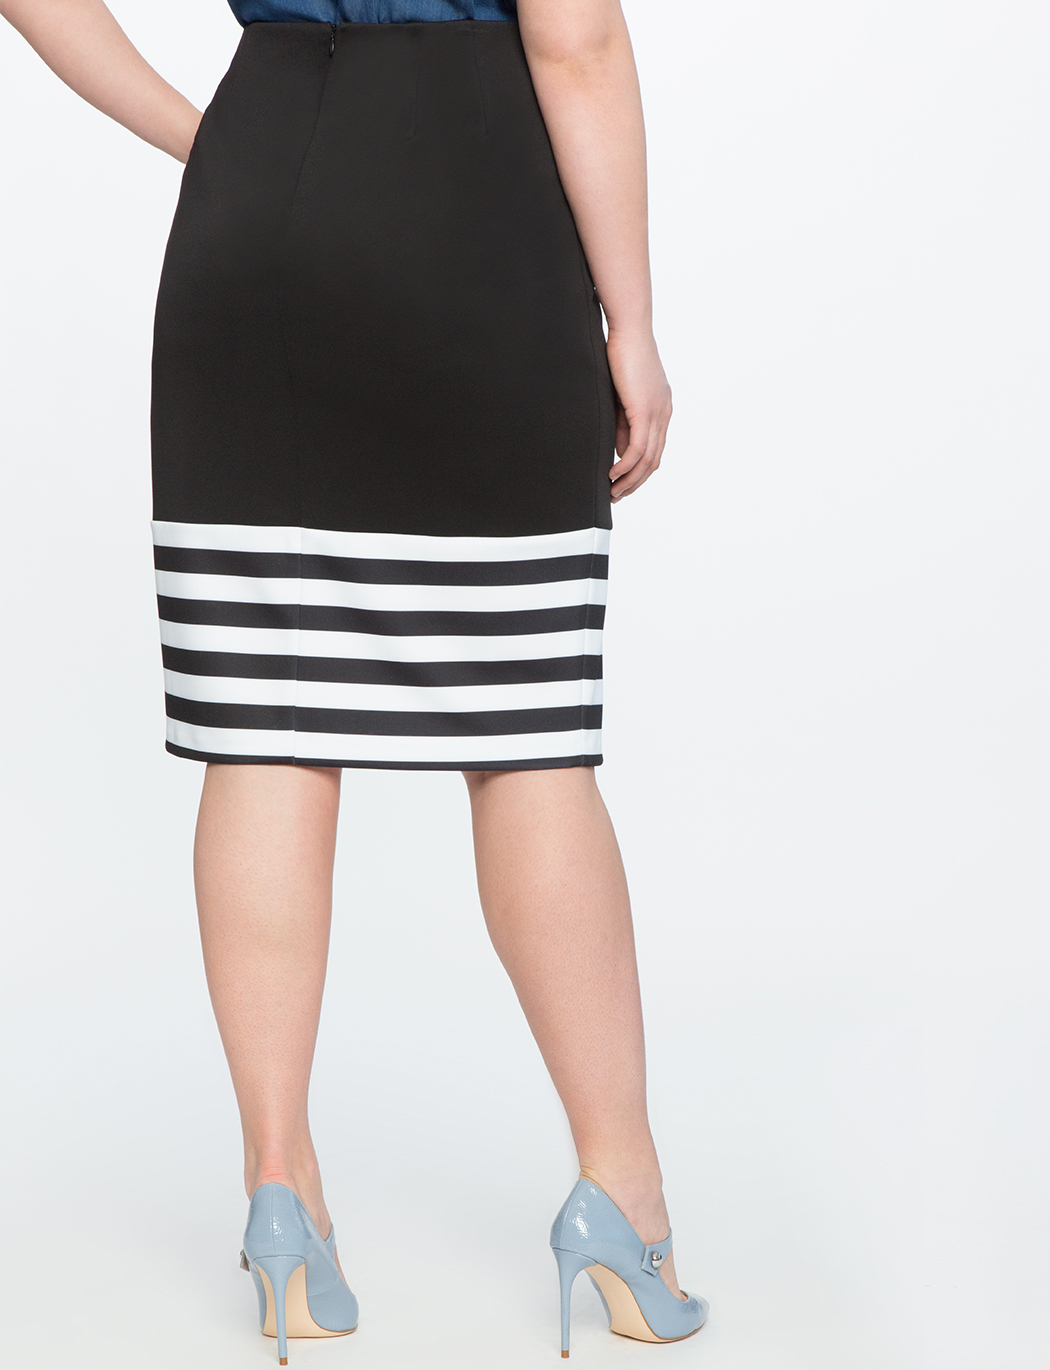 Contrast Striped Pencil Skirt